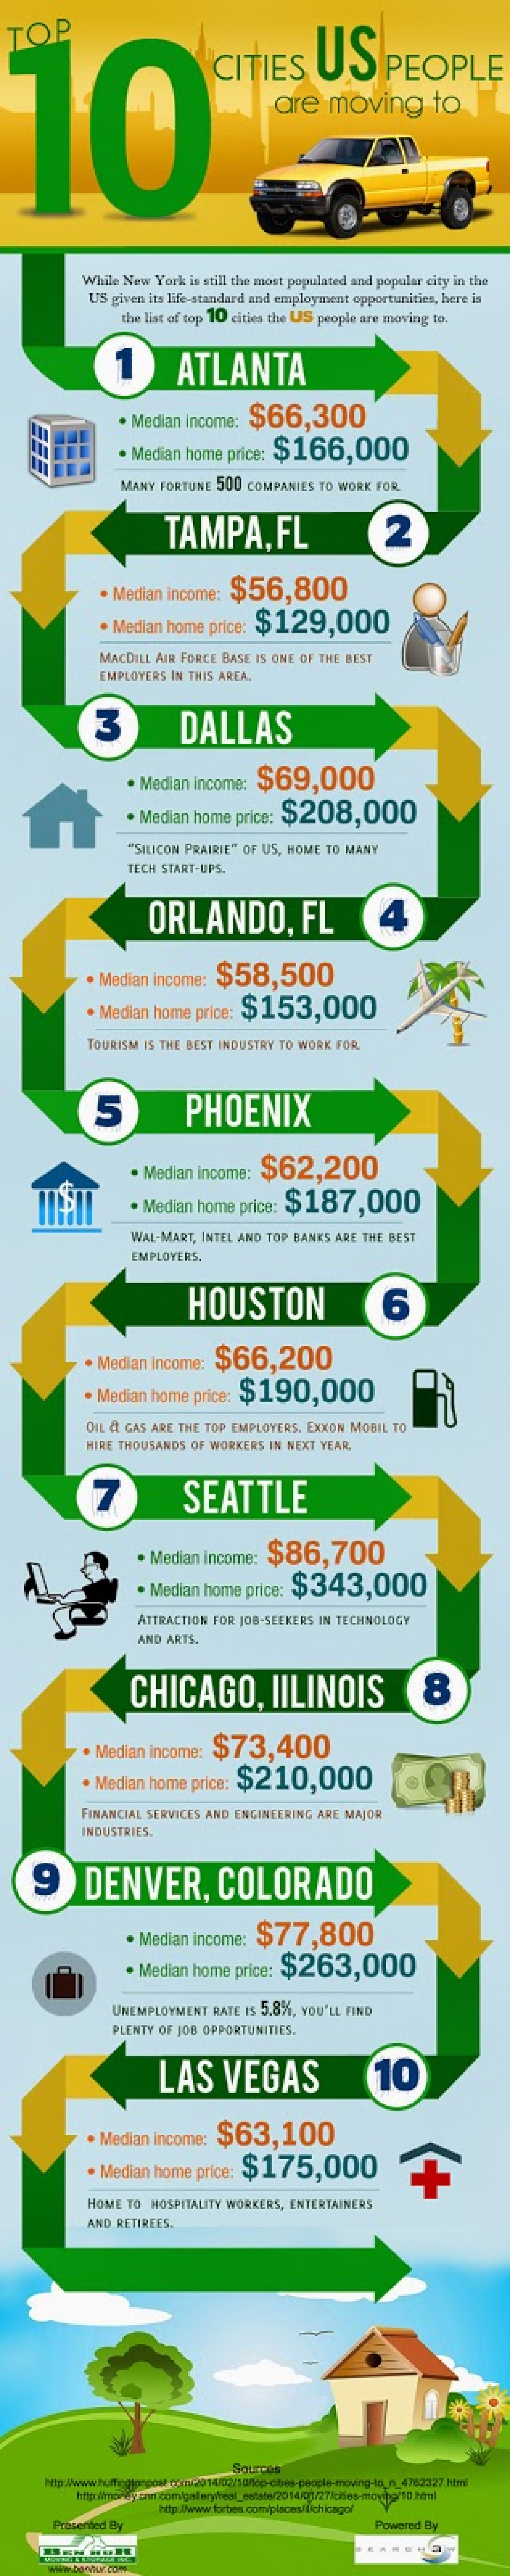 Top 10 Cities US People are Moving to Infographic